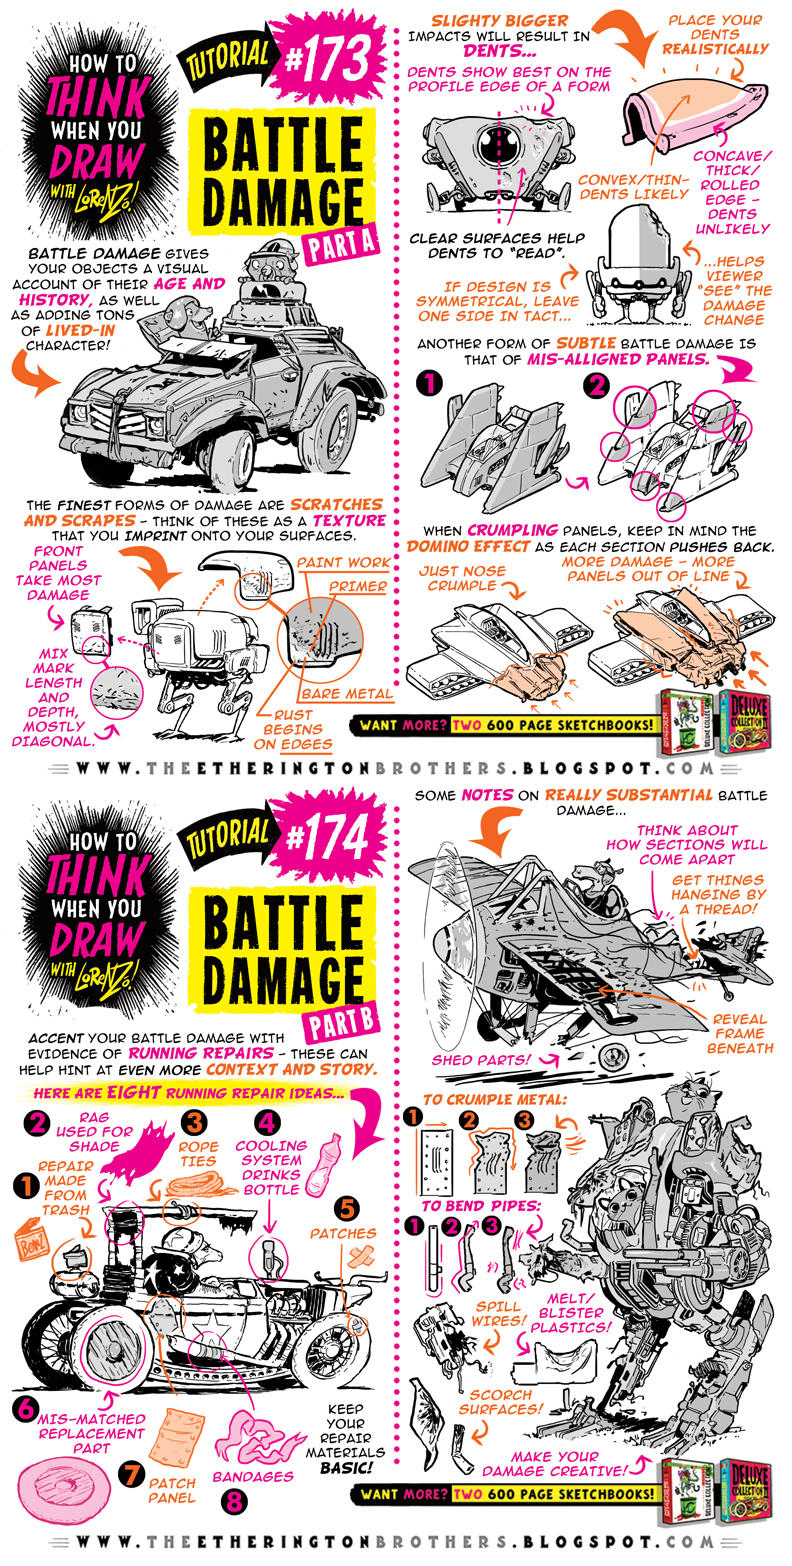 How to draw BATTLE DAMAGE tutorial by STUDIOBLINKTWICE